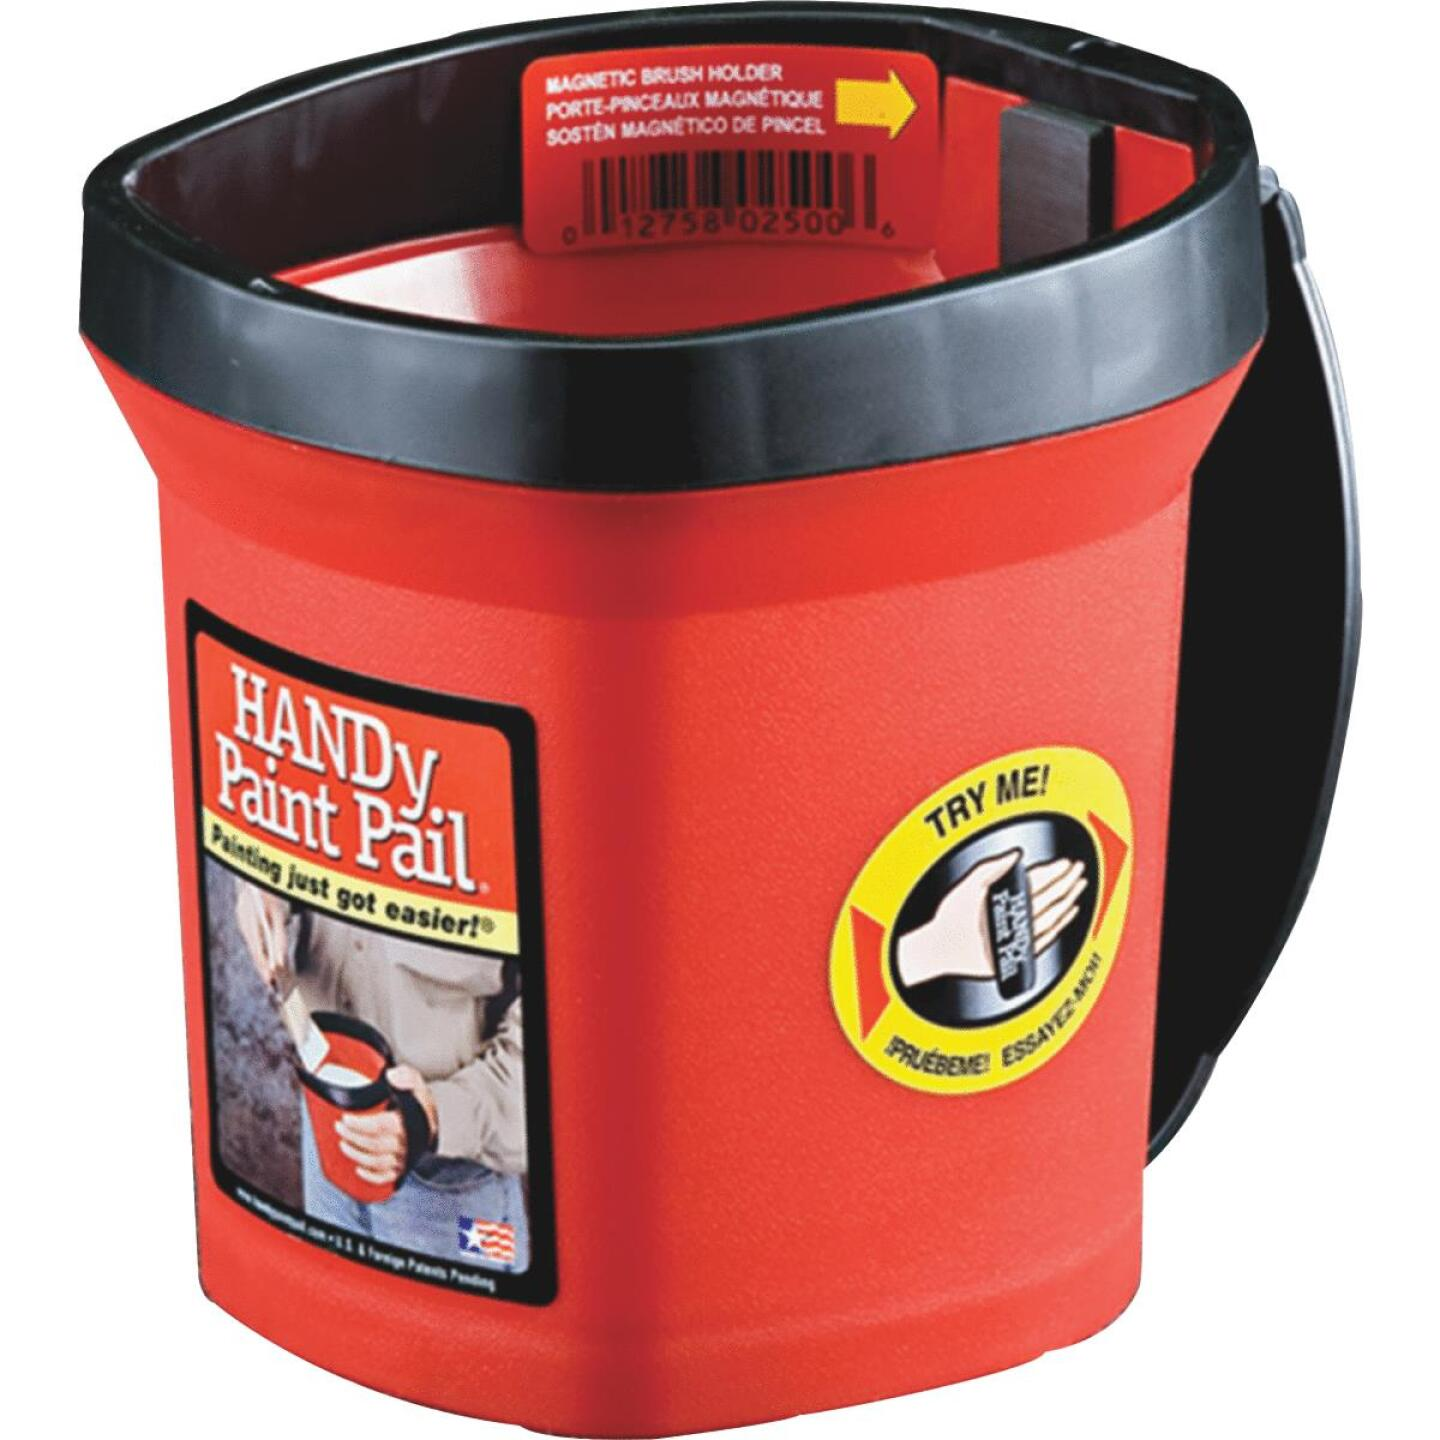 HANDy Paint Pail 1 Qt. Red Painter's Bucket w/Adjustable Strap And Magnetic Brush Holder Image 5